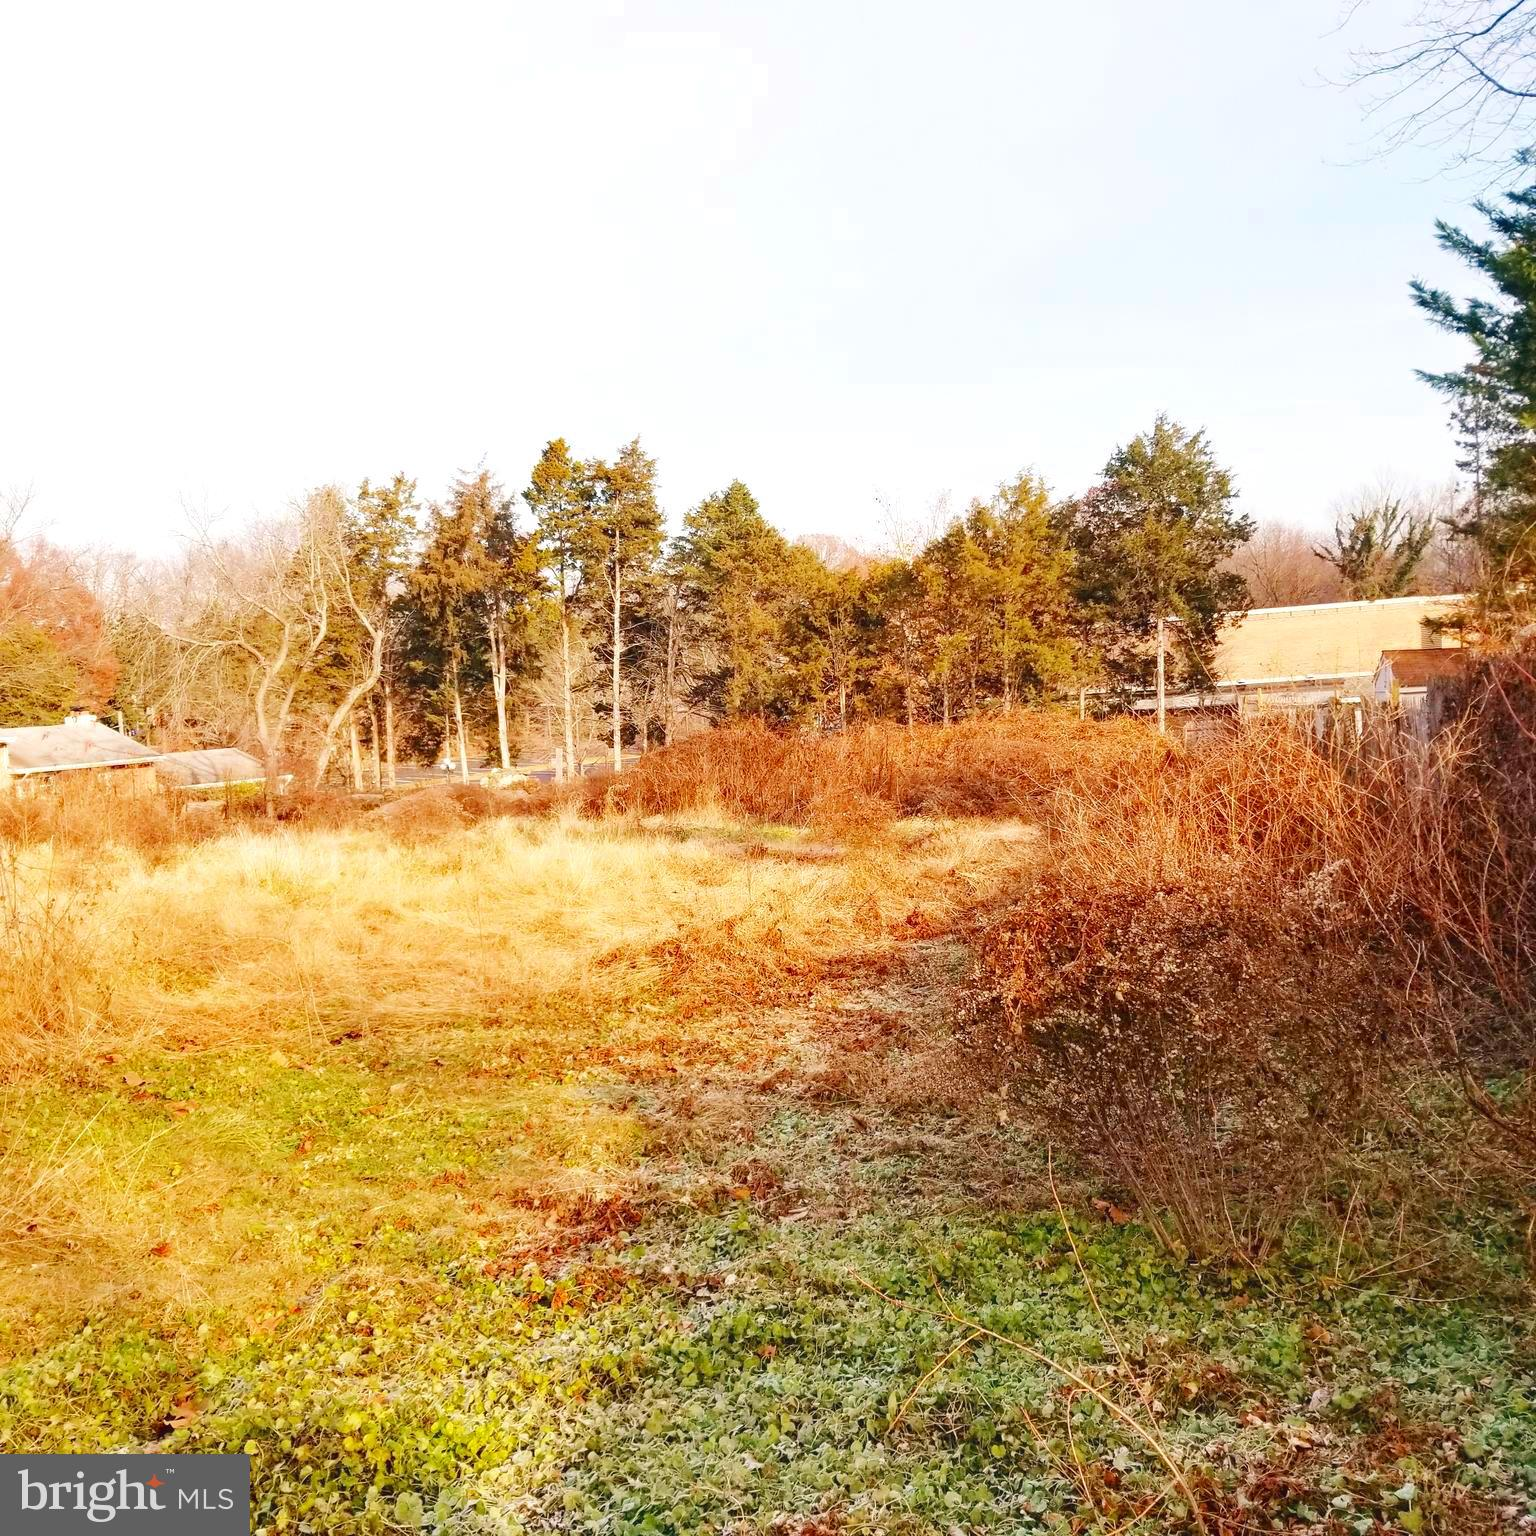 Almost 1 full buildable acre awaits you in fantastic location, buildable land with subdividing potential into two 14,000 square feet lots or build 1 awesome house. Bring your vision builders, developers, custom home builders and or investors. This is an excellent opportunity in  an ideal location.